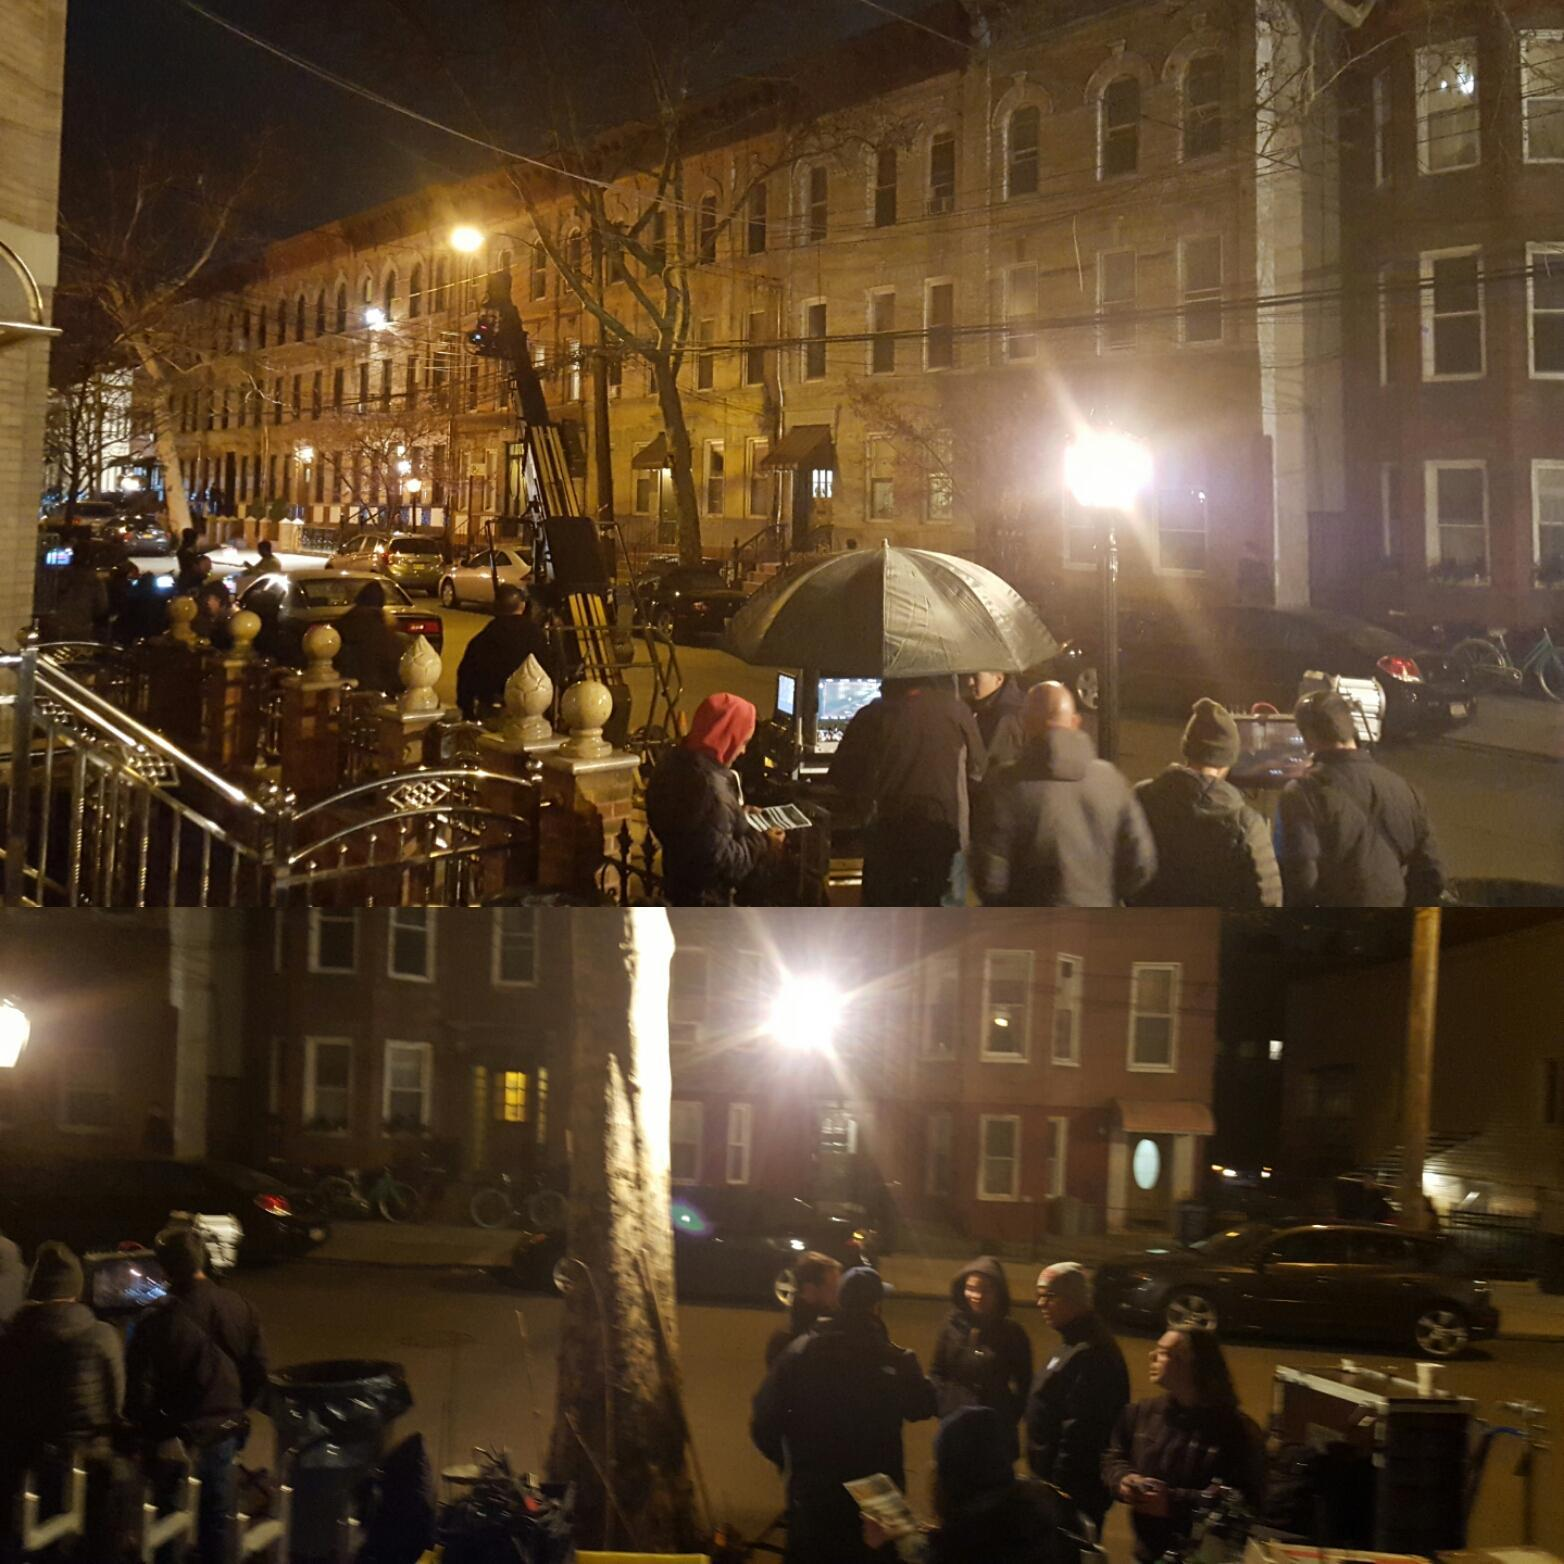 Filming Blue Bloods  in in front of one of our properties again. #Brooklyn #filming #Bluebloods #madeinnyc  #weloveny